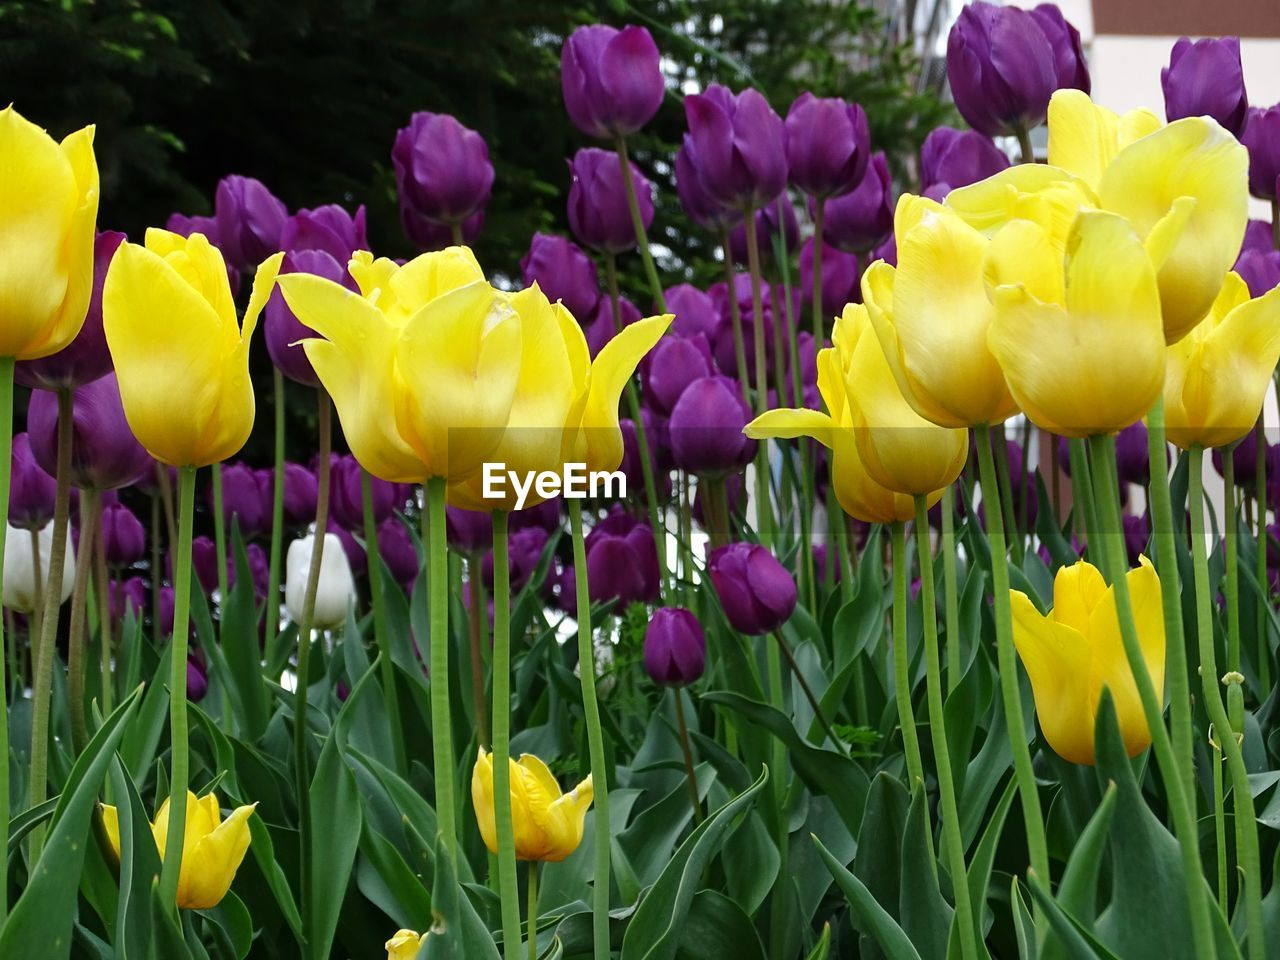 flower, yellow, petal, freshness, fragility, growth, beauty in nature, tulip, nature, vibrant color, purple, day, flower head, multi colored, plant, springtime, blossom, outdoors, no people, blooming, close-up, crocus